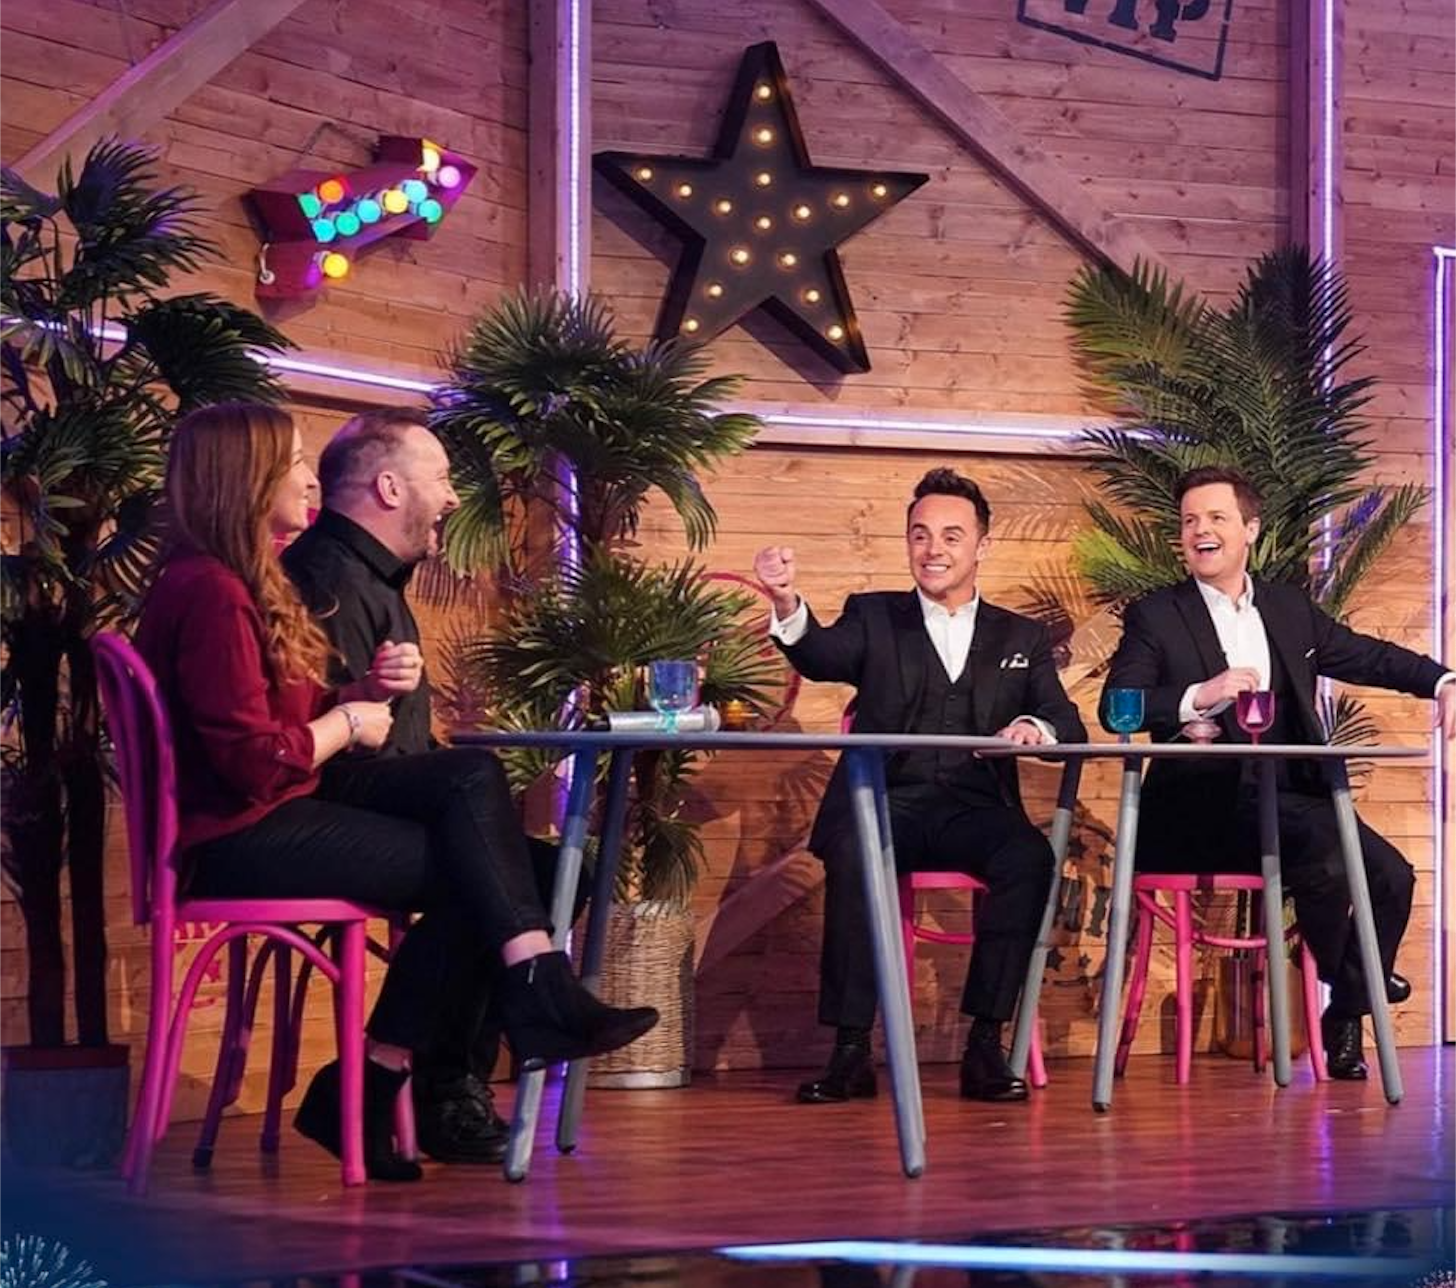 Above: Neil Greenwood with Lorraine Robinson with Ant and Dec being filmed for the recent Saturday Night Takeaway epidode.